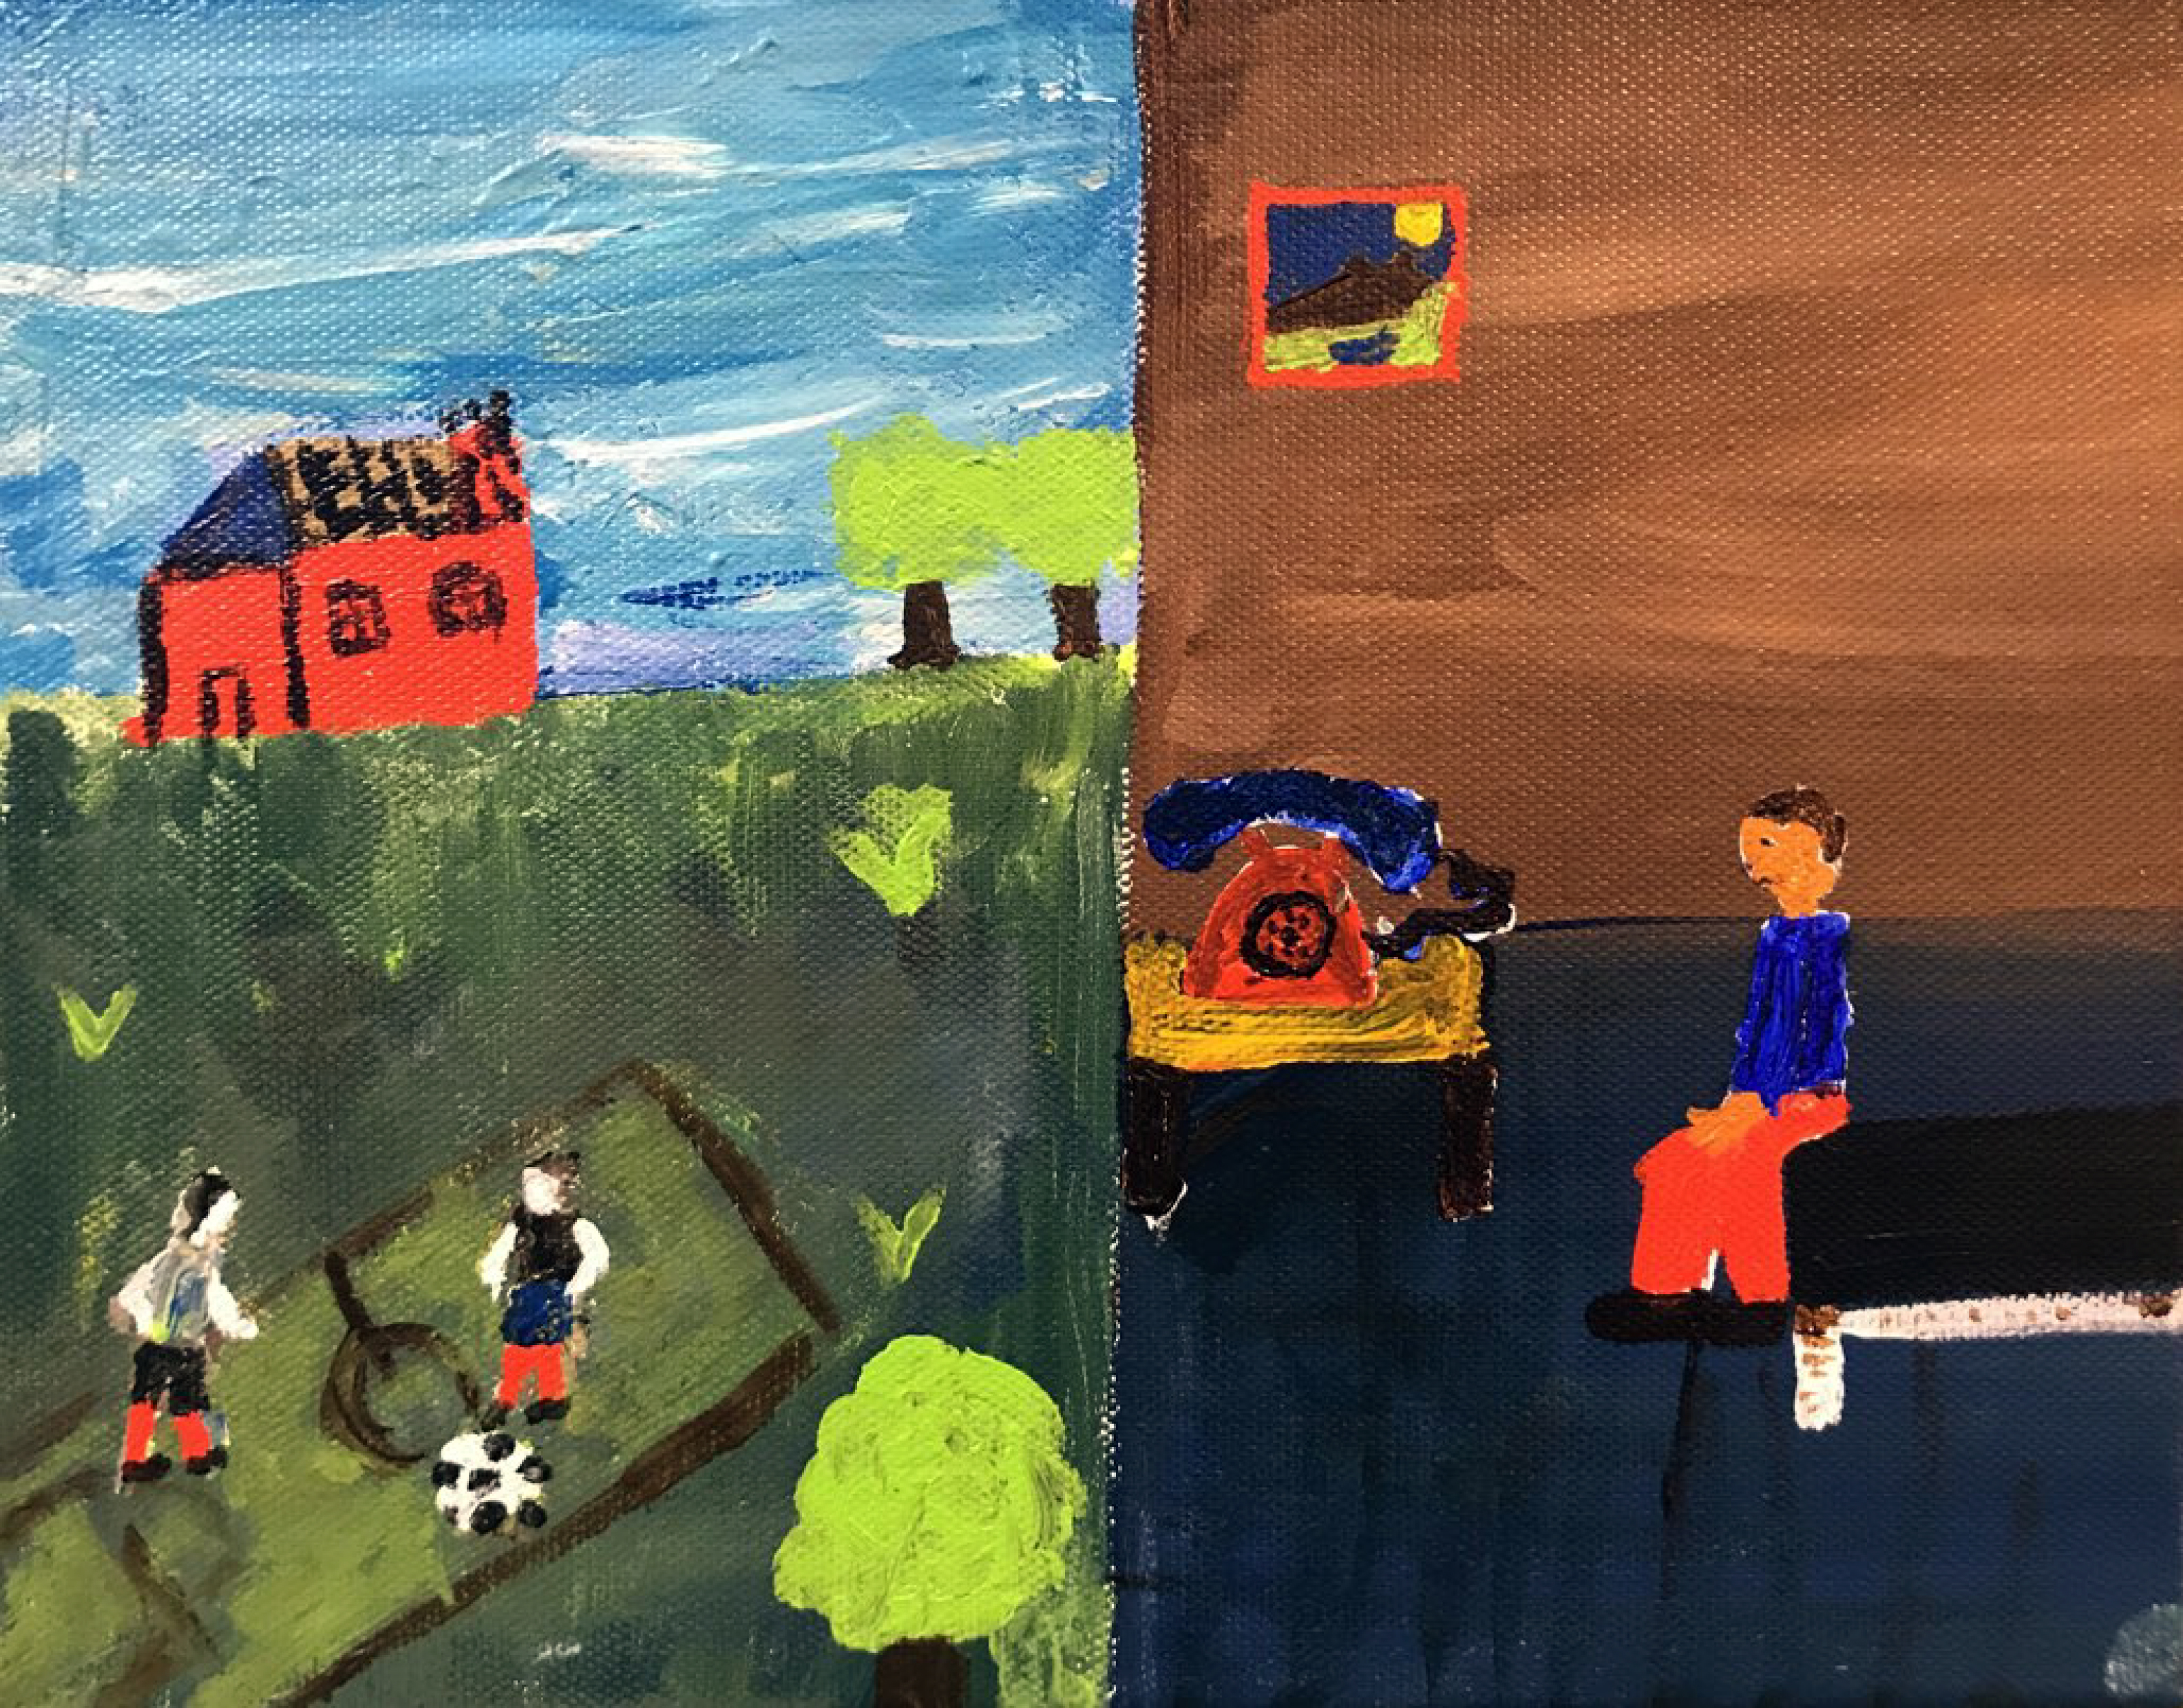 A painting with two sides. On the left, two figures play soccer in front of a red house. On the right, a figure sits on a bed staring at a phone.